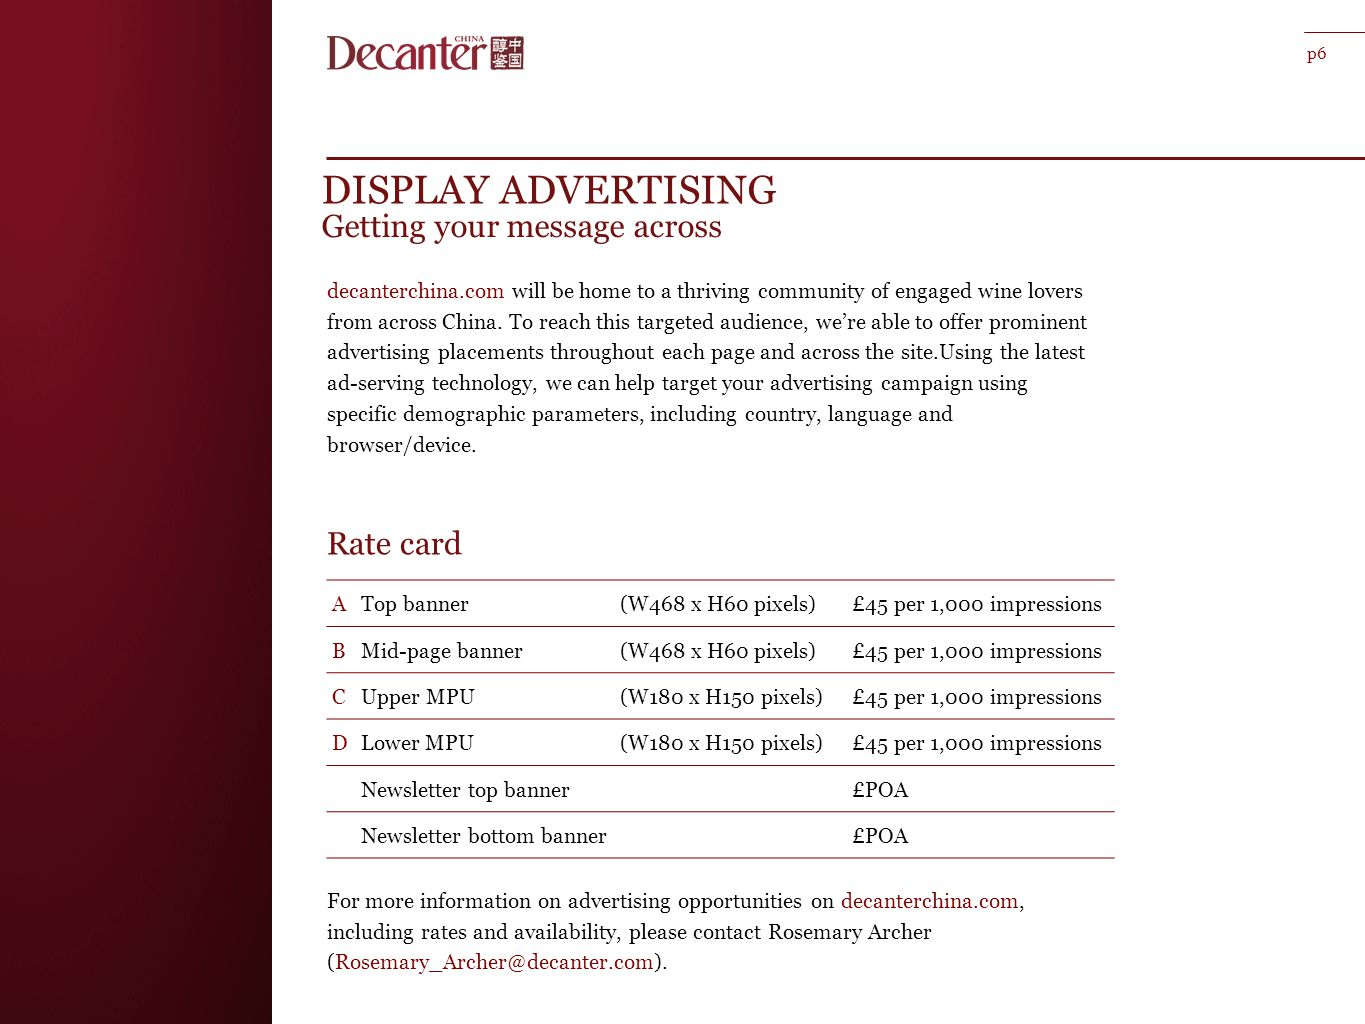 DISPLAY ADVERTISING Getting your message across decanterchina.com will be home to a thriving community of engaged wine lovers from across China.